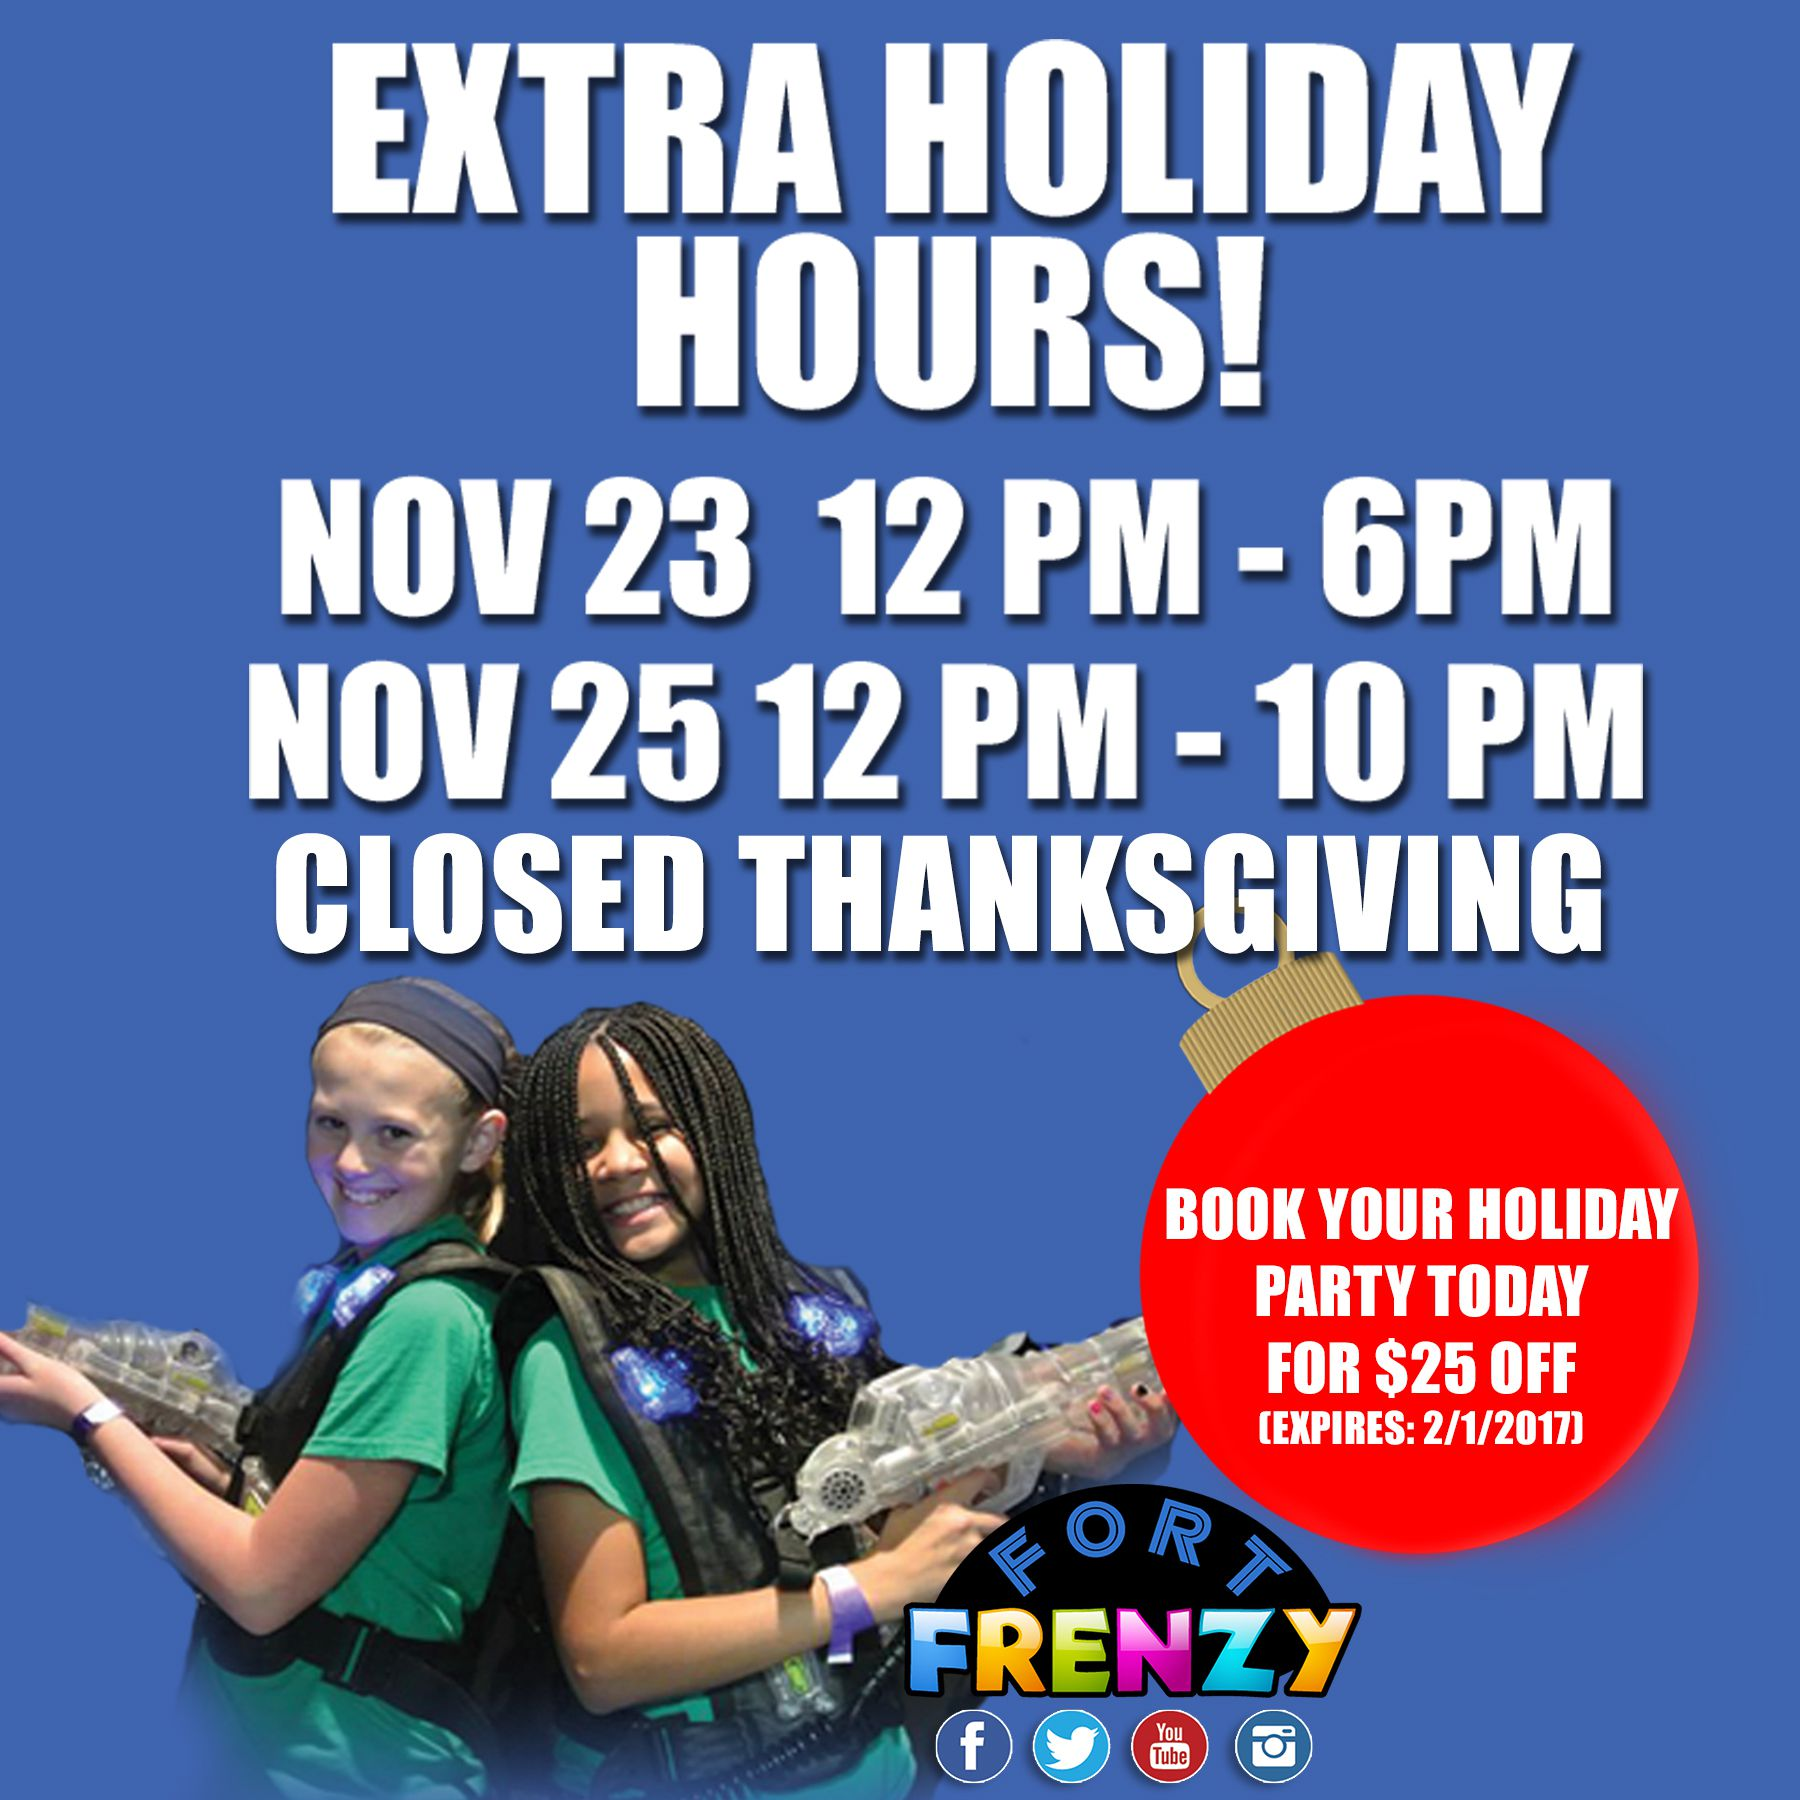 FF Holiday Hours.jpg